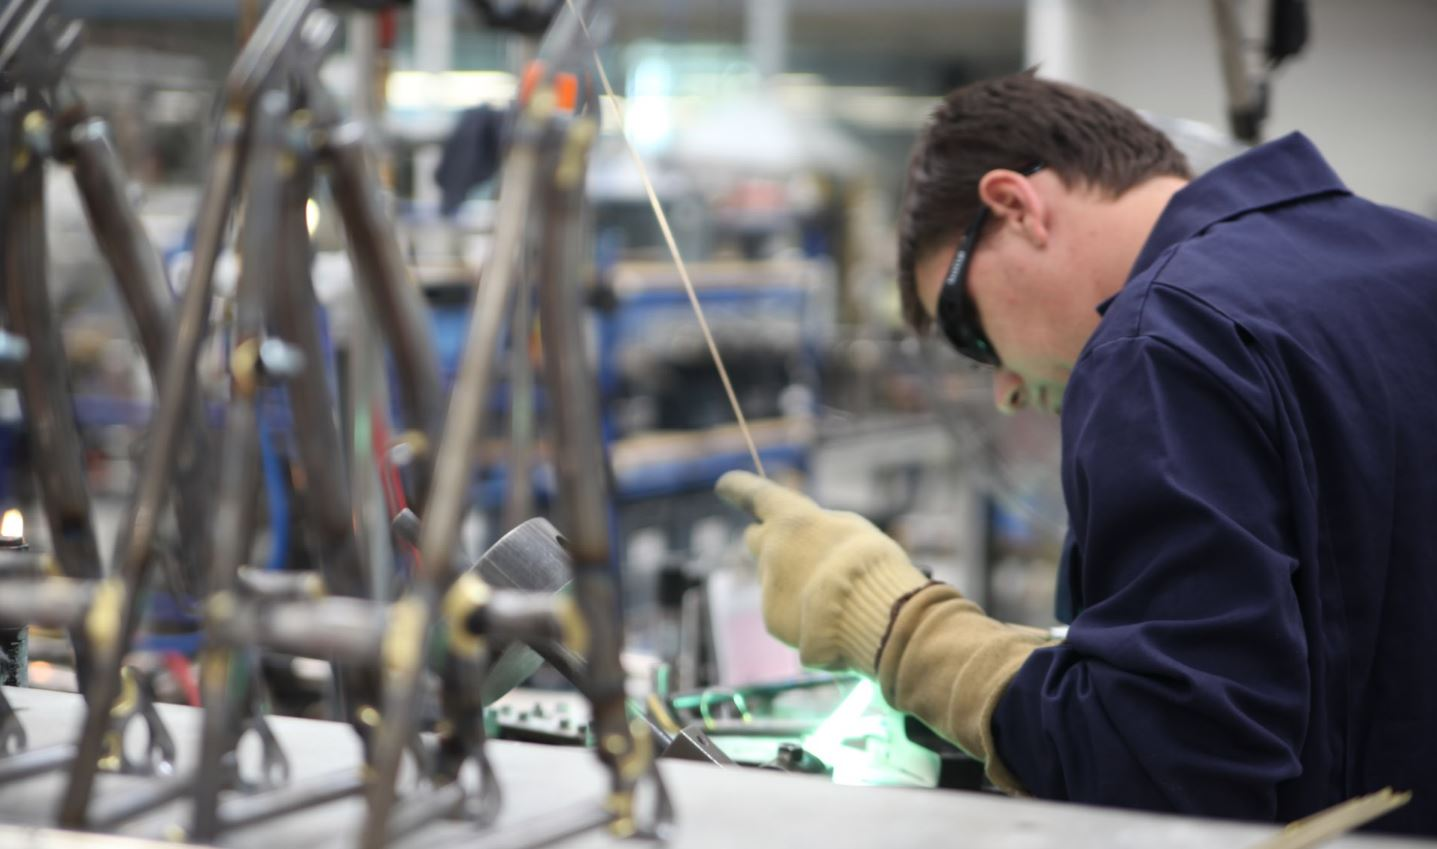 Brompton's Greenford plant is targeting 100,000 bikes produced a year